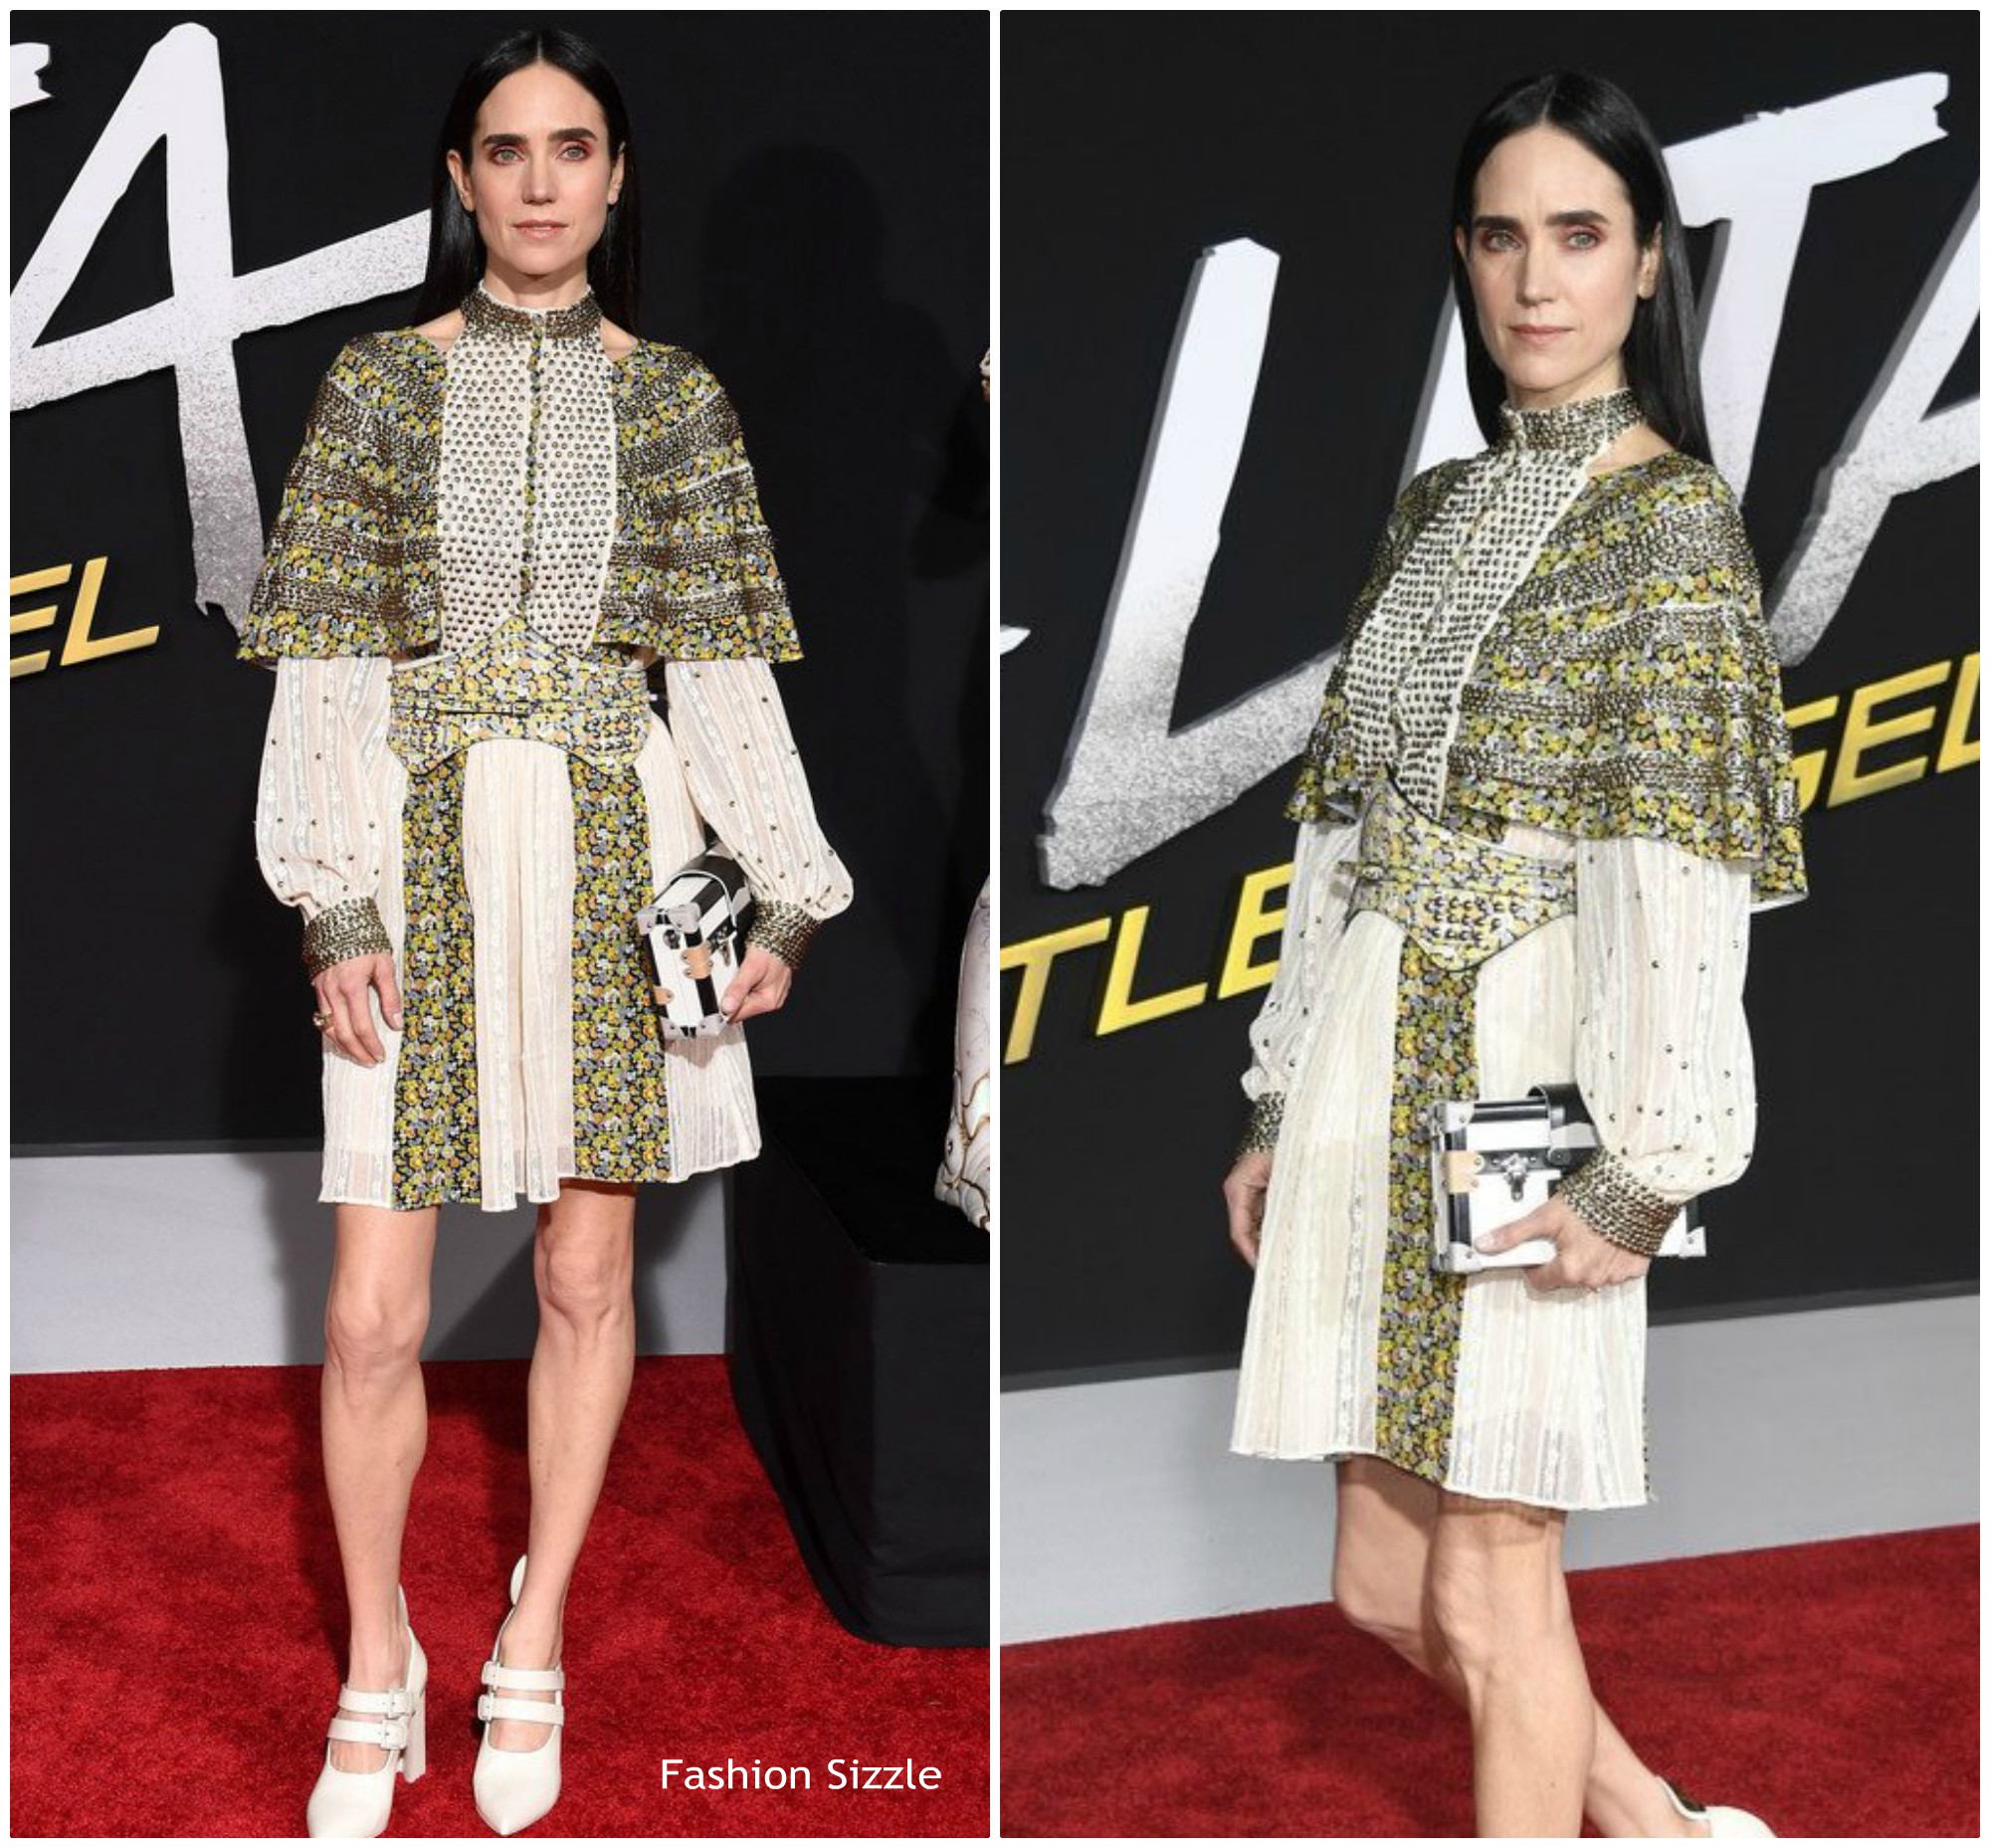 jennifer-connelly-in-louis-vuitton-alita-battle-angel-la-premiere